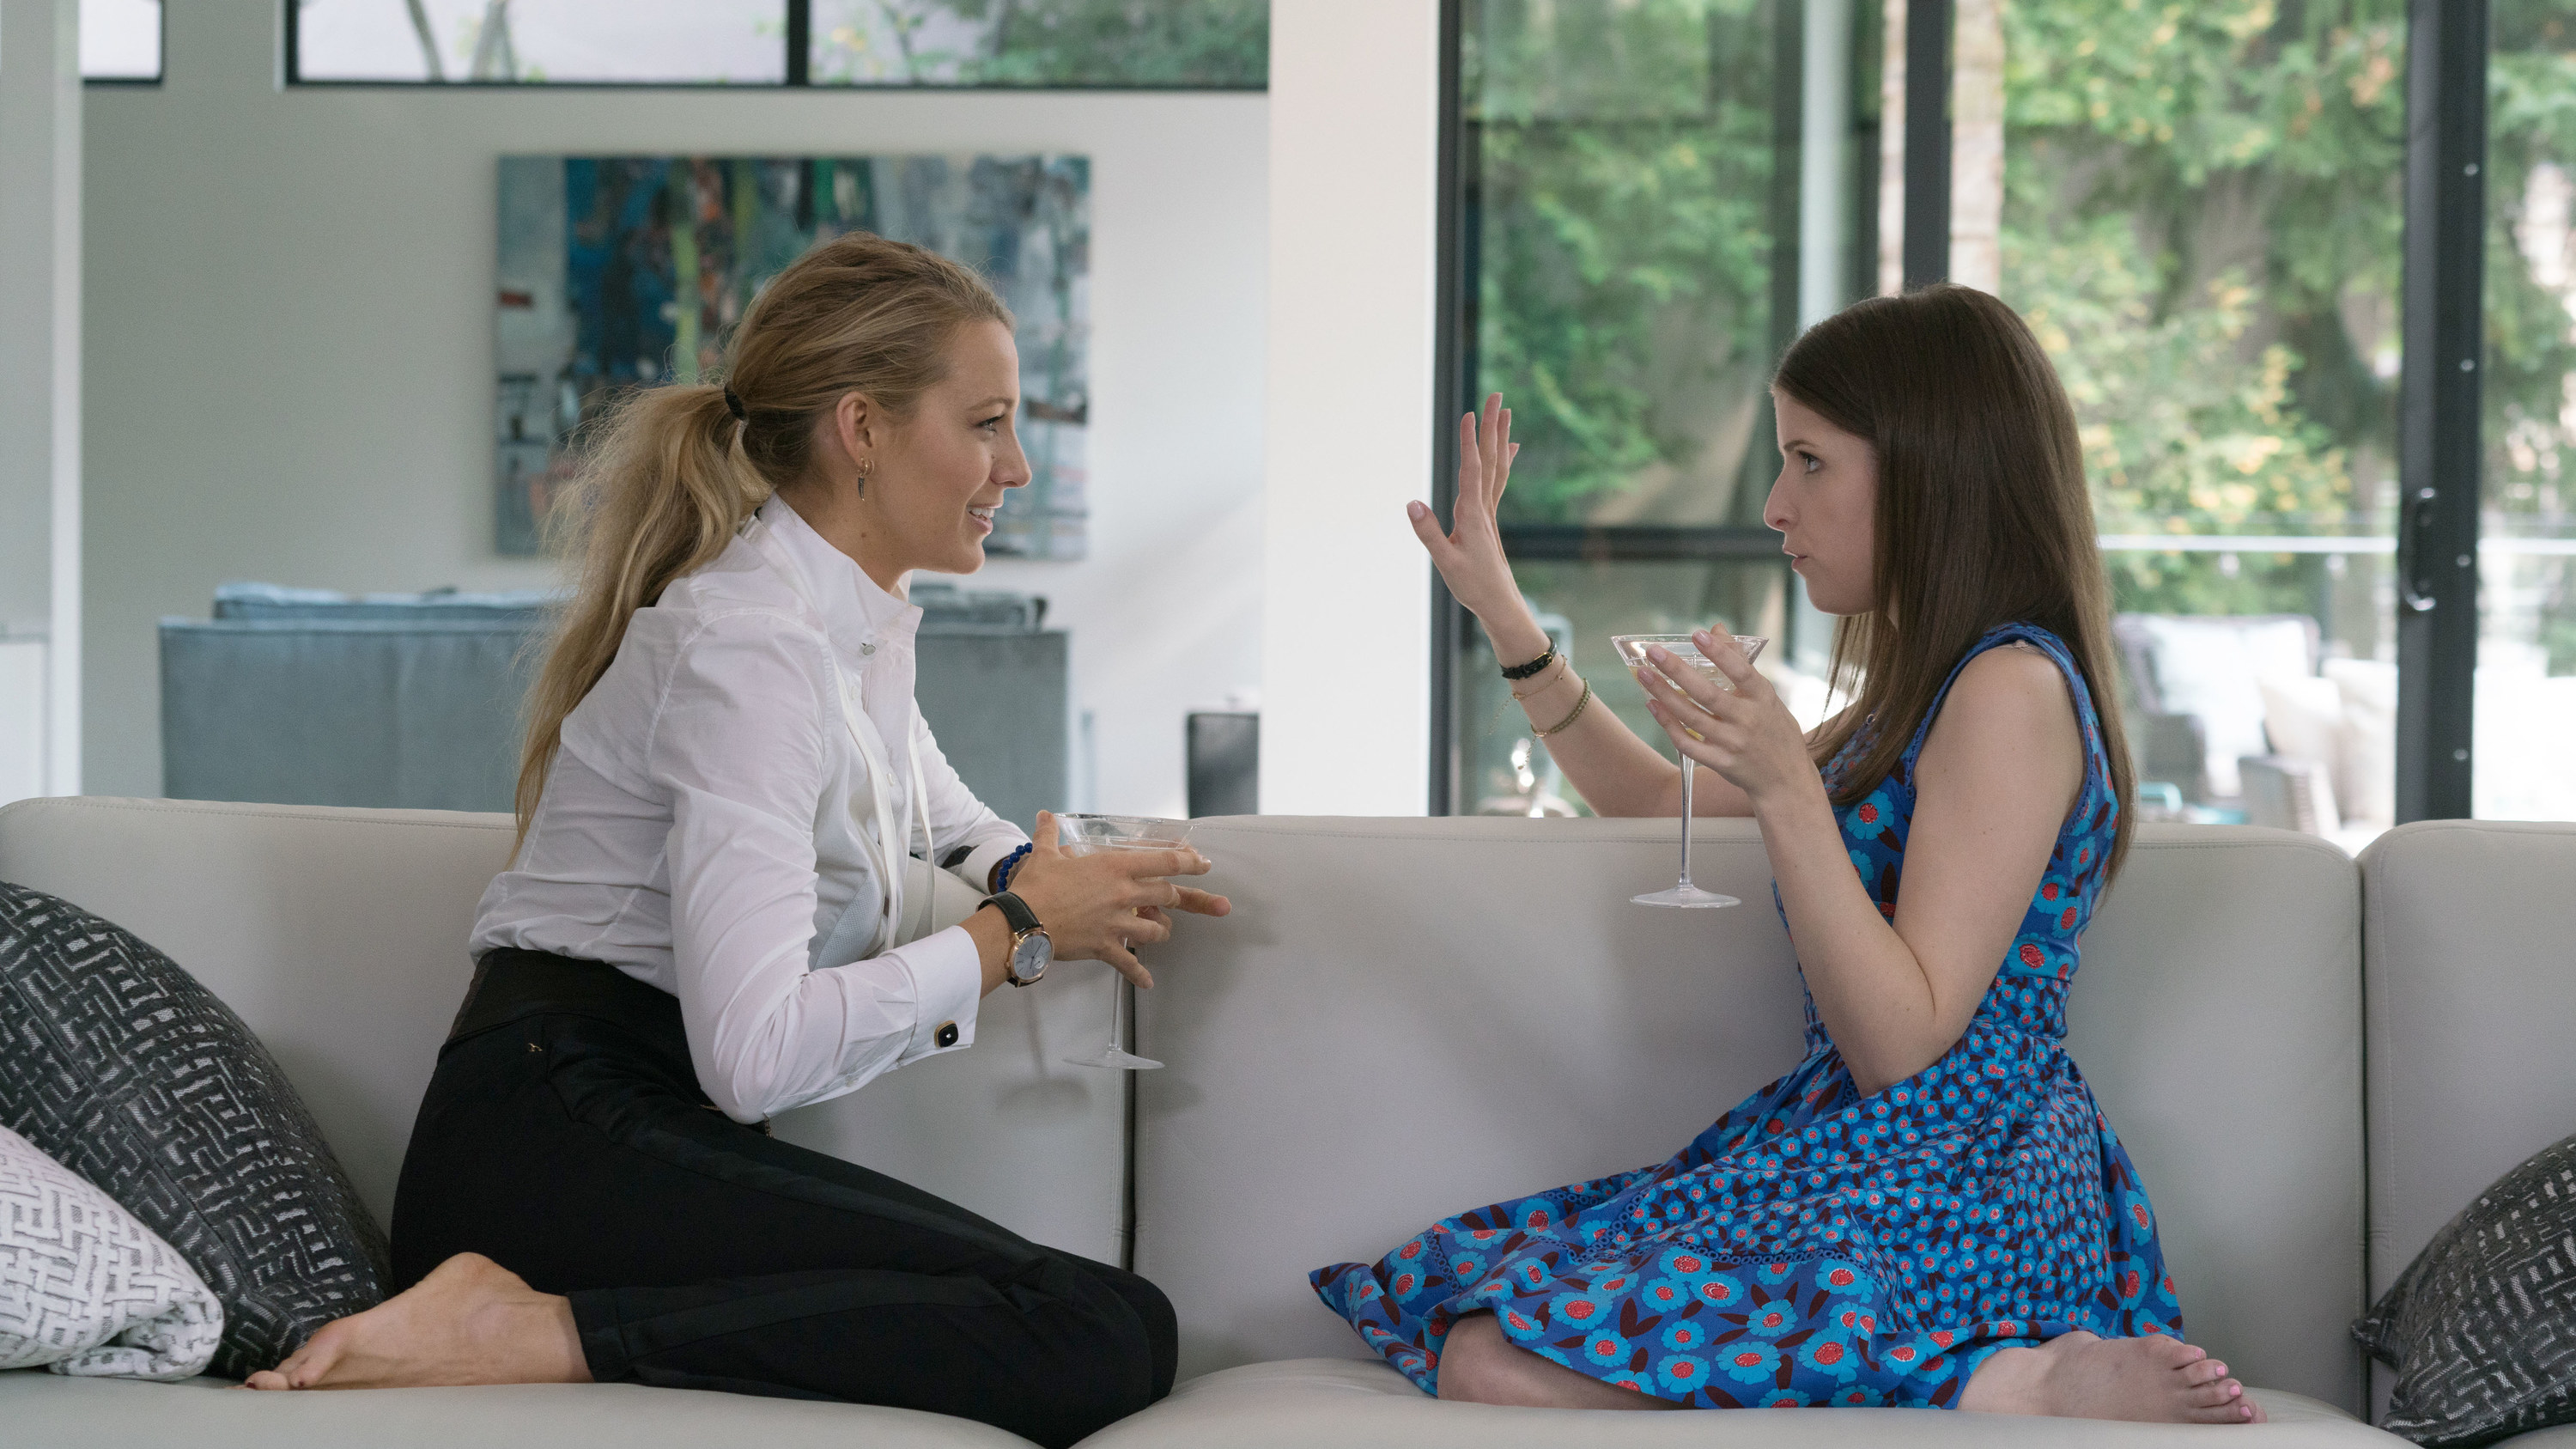 """Blake Lively and Anna Kendrick sitting on a couch and sipping drinks in """"A SImple Favor"""""""